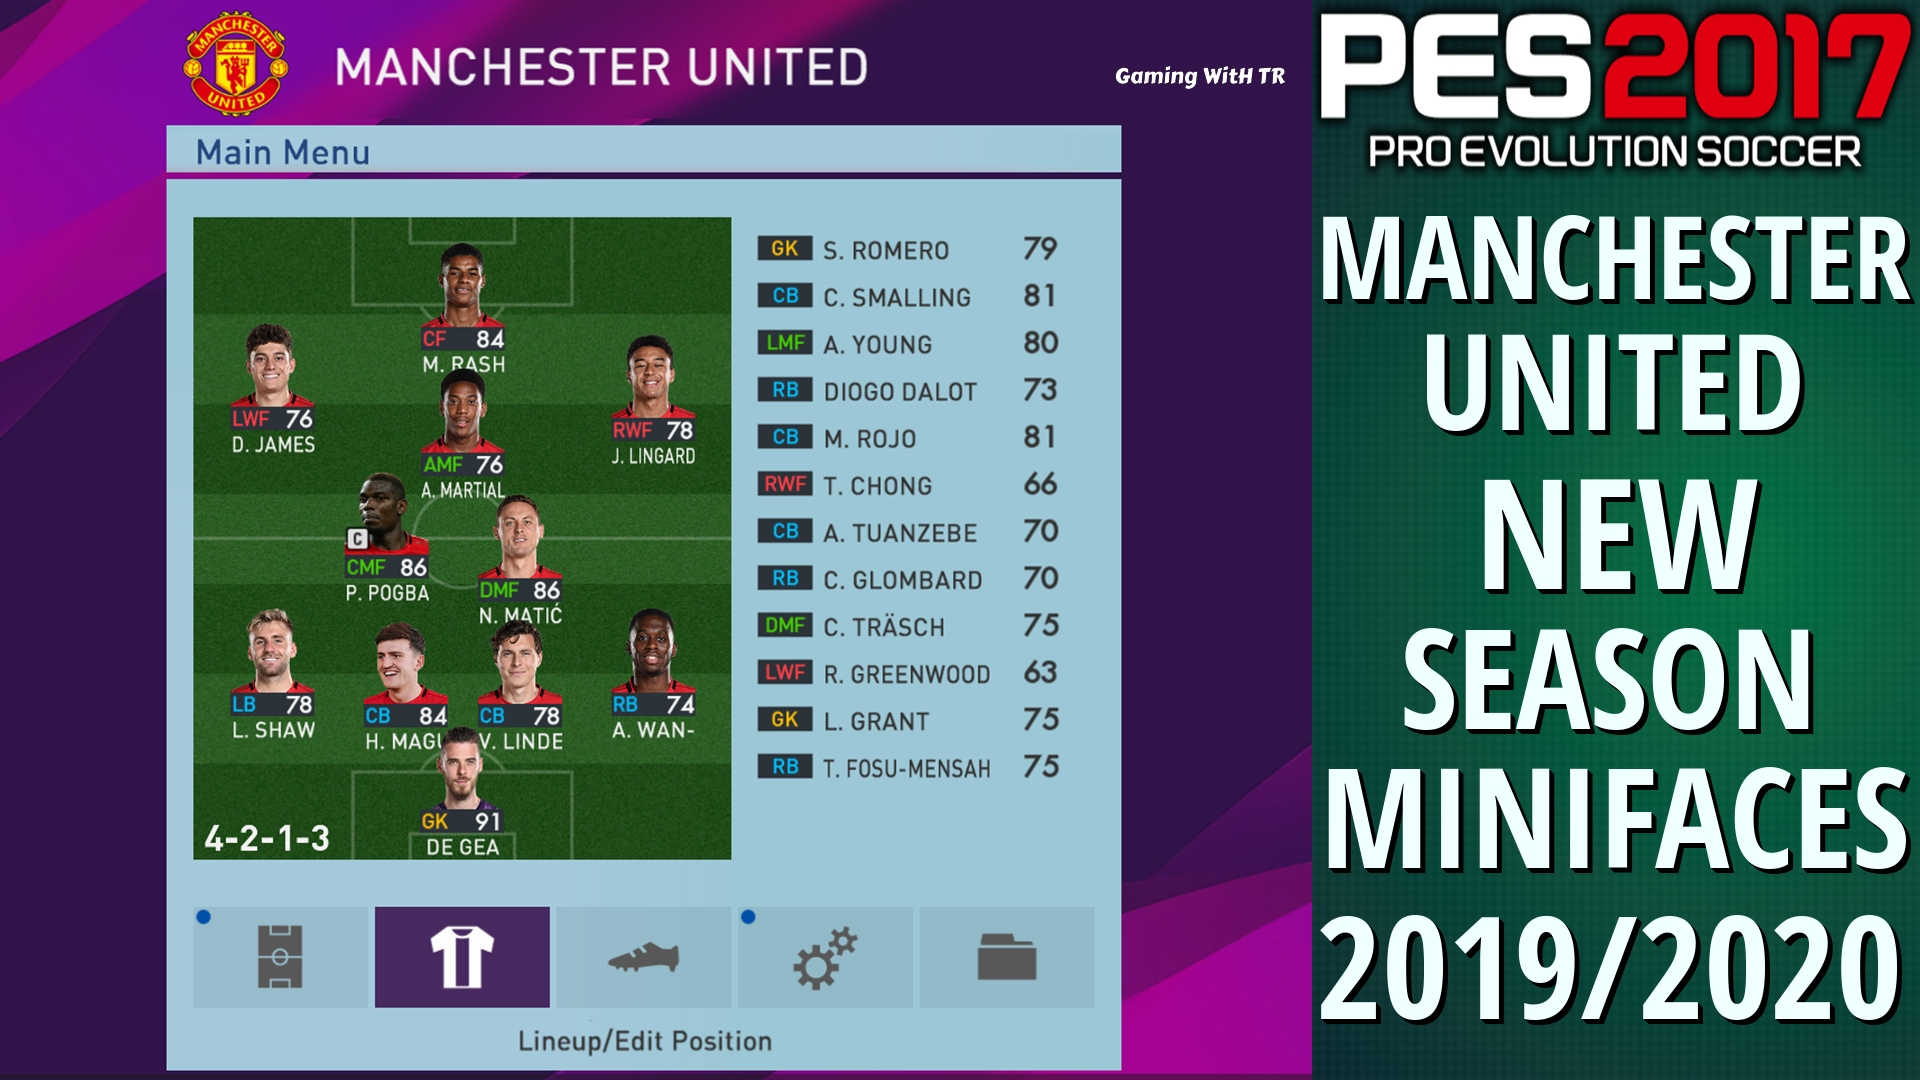 PES 2017 MANCHESTER UNITED MINIFACES 2019 2020